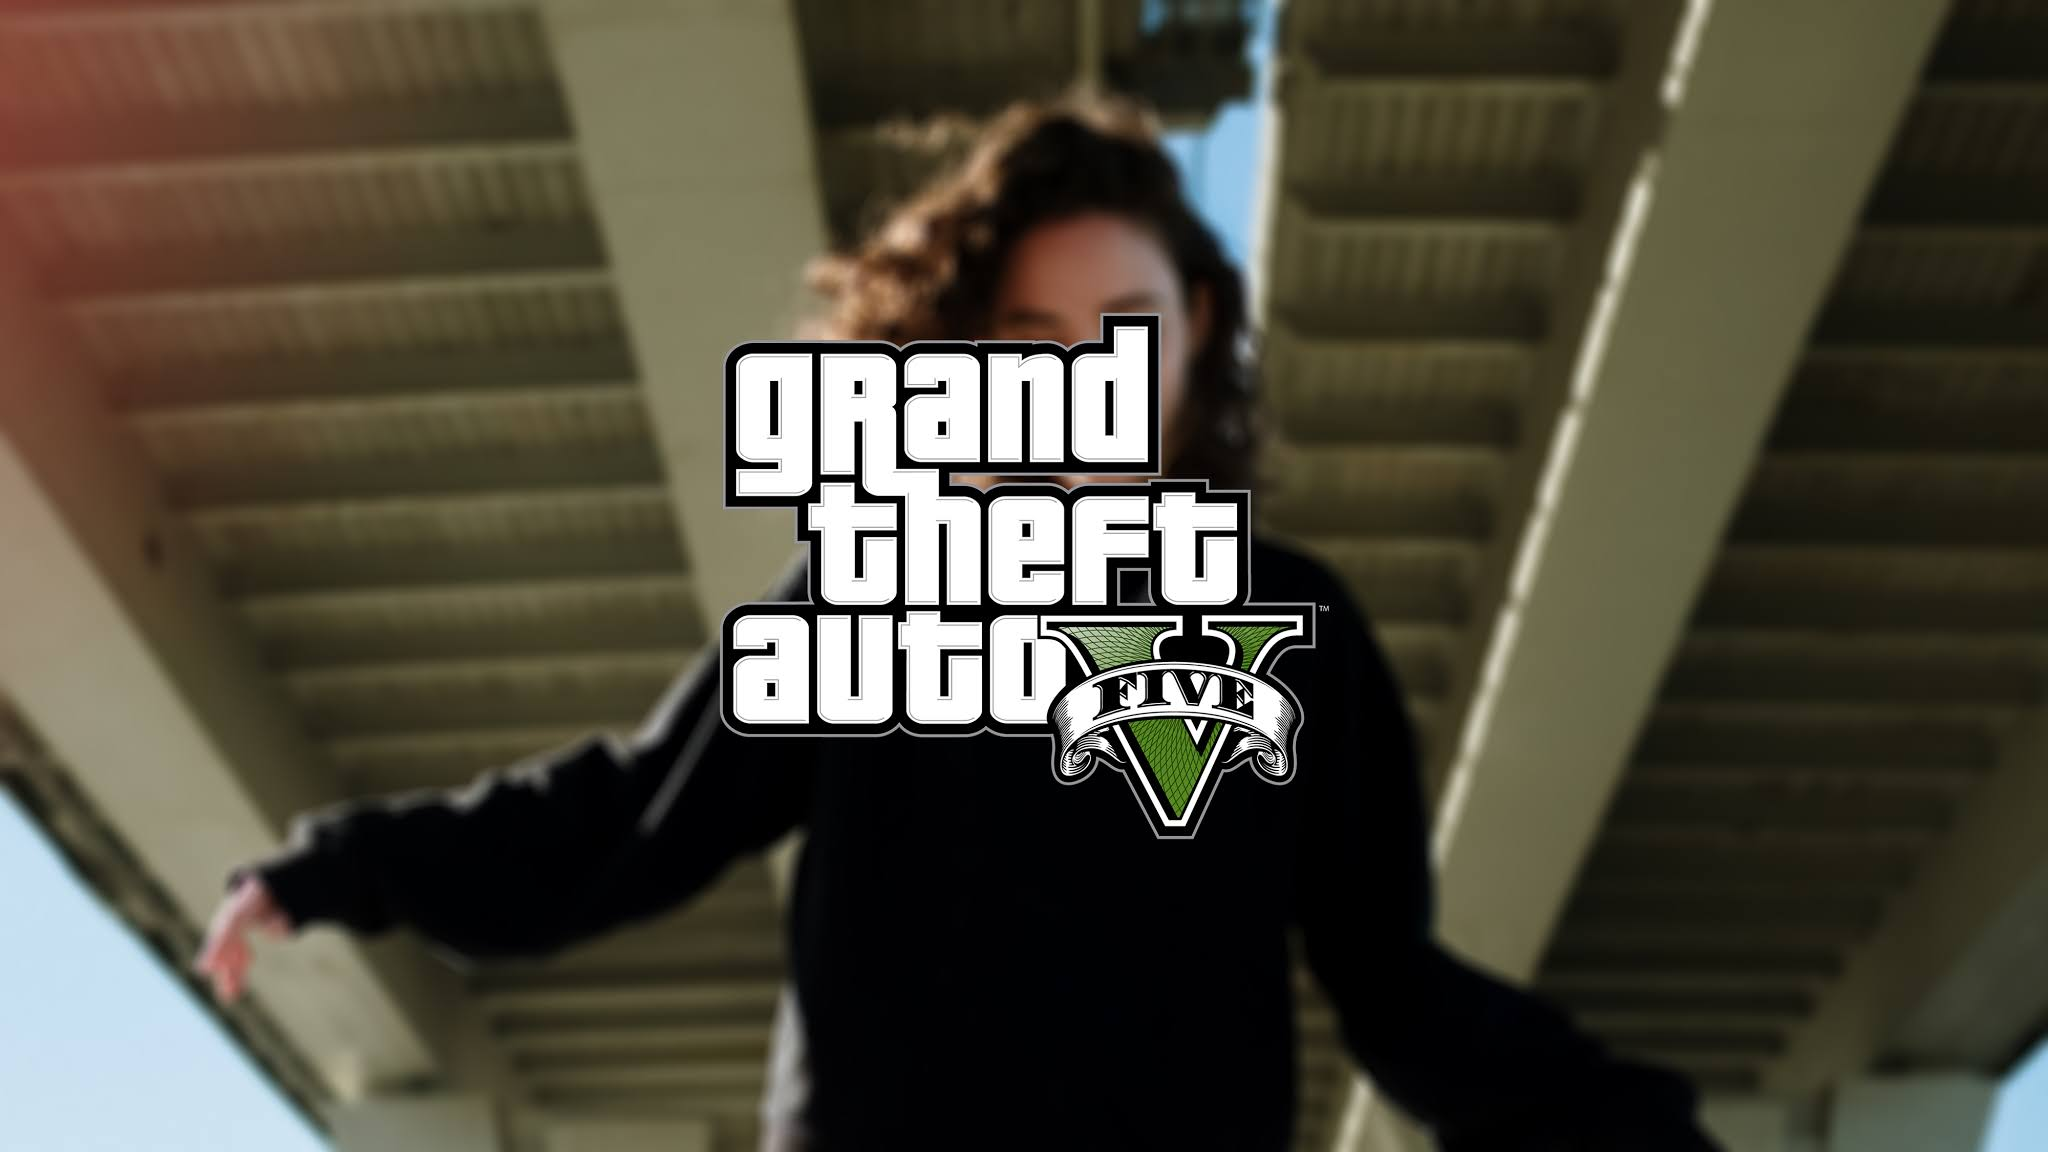 gta 5 loading screen,loading screen,gta 5 loading screen girl,gta 5 infinite loading screen,gta loading screen,gta v loading screen,gta 5 stuck on loading screen,infinite loading screen gta 5,gta 5 pc infinite loading screen,infinite loading screen fix,gta 5 pc infinite loading screen fix,how to fix infinite loading screen gta 5,gta 5 pc infinite loading screen error fix,loading,gta 4 loading screen,how to fix gta 5 stuck on loading screen after installing mods,infinite loading screen grand theft auto 5,grand theft auto v,grand theft auto,grand theft auto 6,grand,theft,grand theft auto v funny moments,grand theft auto vi,grand theft auto v ps3,grand theft auto secrets,grand theft auto v lets play,grand theft auto 5 lets play,grand theft auto v gameplay,grand theft auto 5 gameplay,grand theft auto v game play,grand theft auto 5 game play,grand theft auto v unboxing,grand theft auto 5 unboxing,grand theft auto san andreas,grand theft auto v (video game) shelby welinder,shelby,shelby gr,shelby_-welinder,shelbygr-1,lindsay lohan,gta 5 franklin and michael,life after heist,lindsay lohan (celebrity),pandemic,franklin,video game (industry),best gta online videos,gta online,interview,grand theft auto (video game series),gta 5 online,gta 5 amanda and franklin,dead inside,gta v online,life afer heist serie gta,gta 5 franklin girlfriend,dead rising 4,covid relief,gta 5 amanda calls franklin,gta 5 michael cheats amanda,gta 5 franklin gta 5 loading screen girl,how to change the loading screen of gta v,how to change screen loader of gta v,gta 5 how to find loading screen girl,how to skip loading screen in gta 5,gta 5 loading screen,how to change screen loader of gta v on startup,gta v remove loading screen,how to change gta 5 loading screen pc,gta 5 loading screen girl in game,how to change gta 5 loading screens,loading screen,change the image of beach lady during gta 5 loading,how to change loading screen